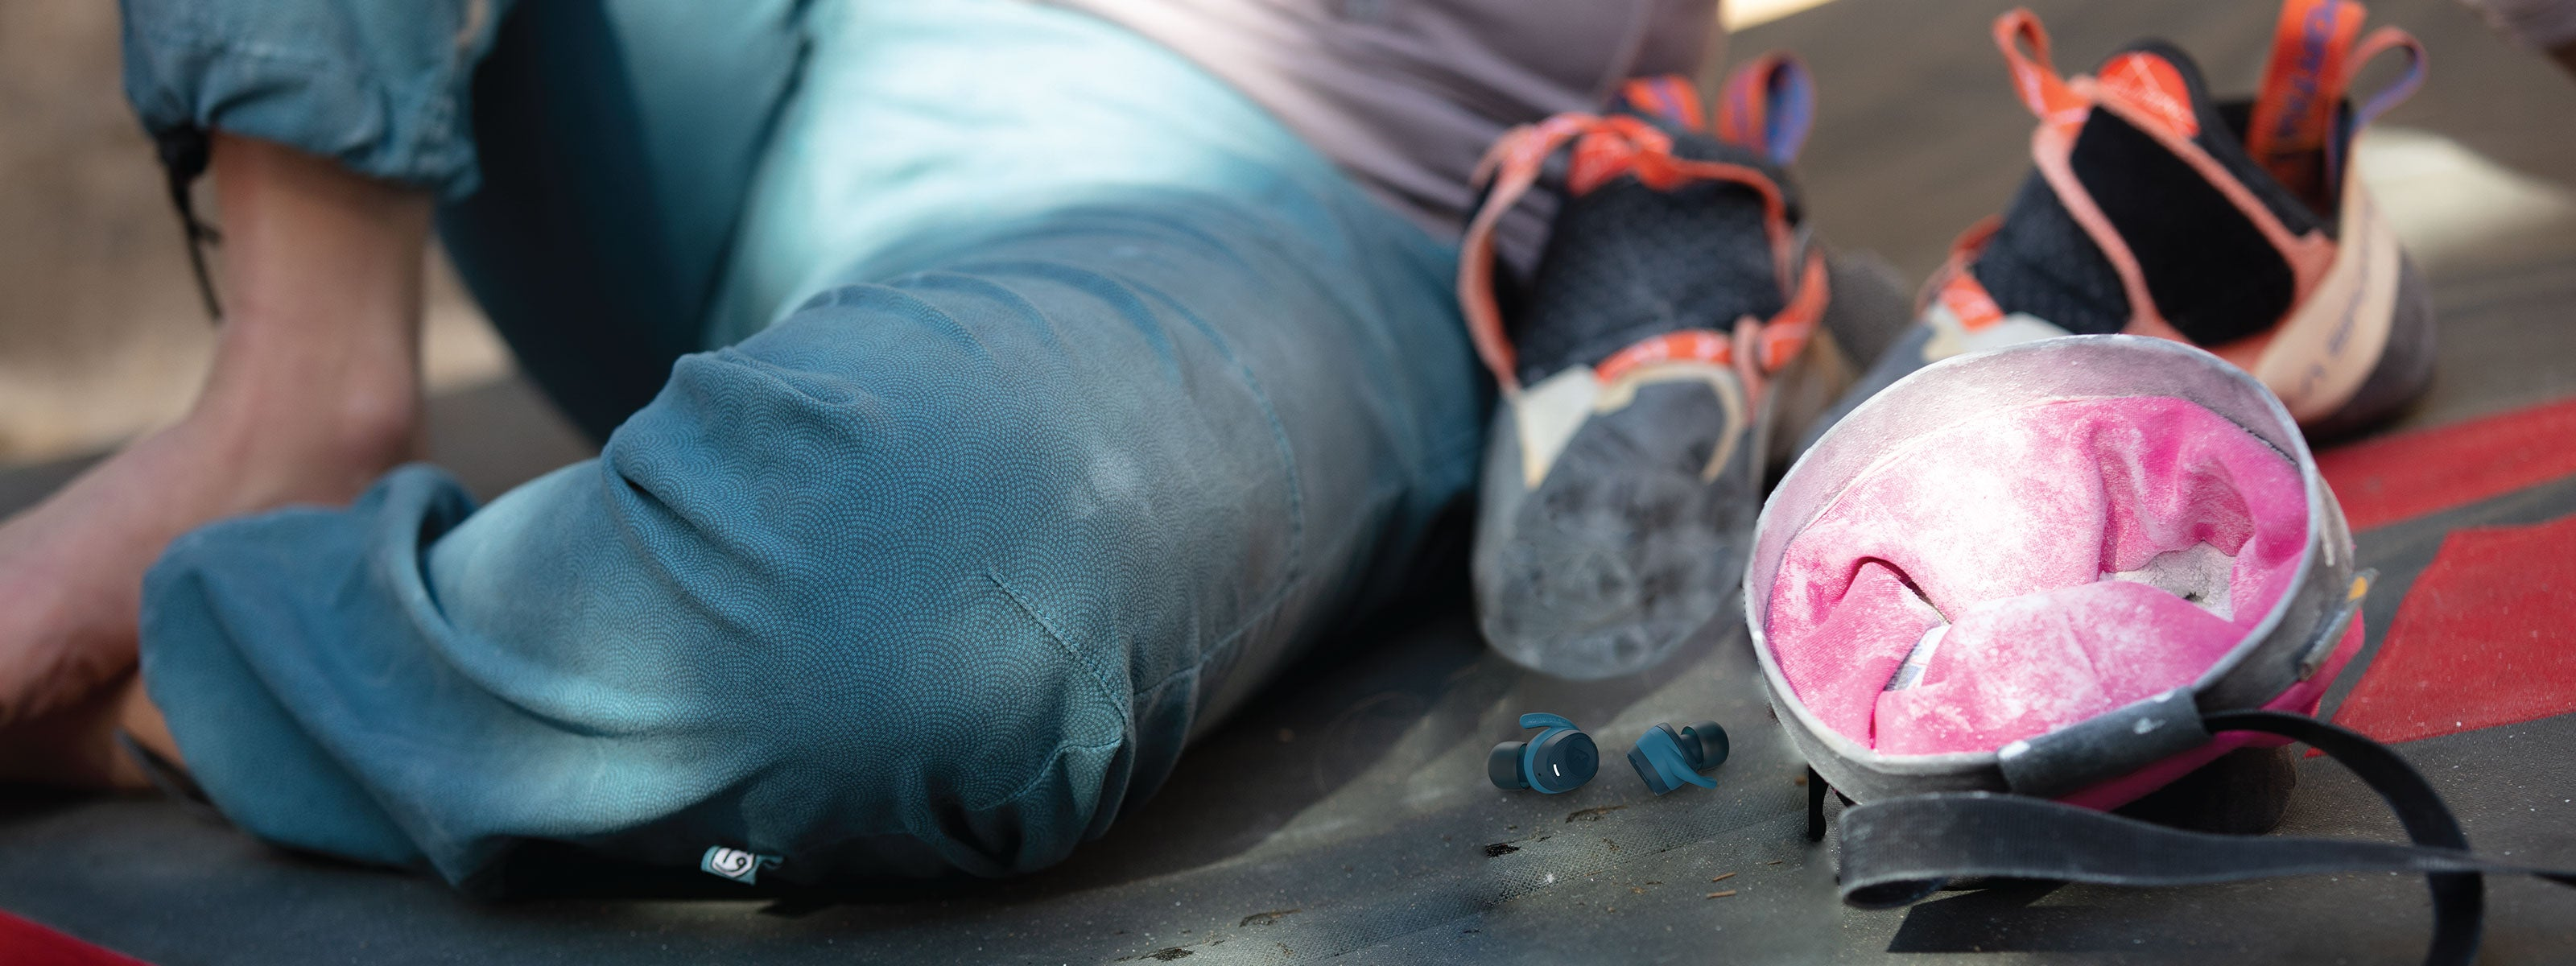 Woman about to rock climb with chalk bag